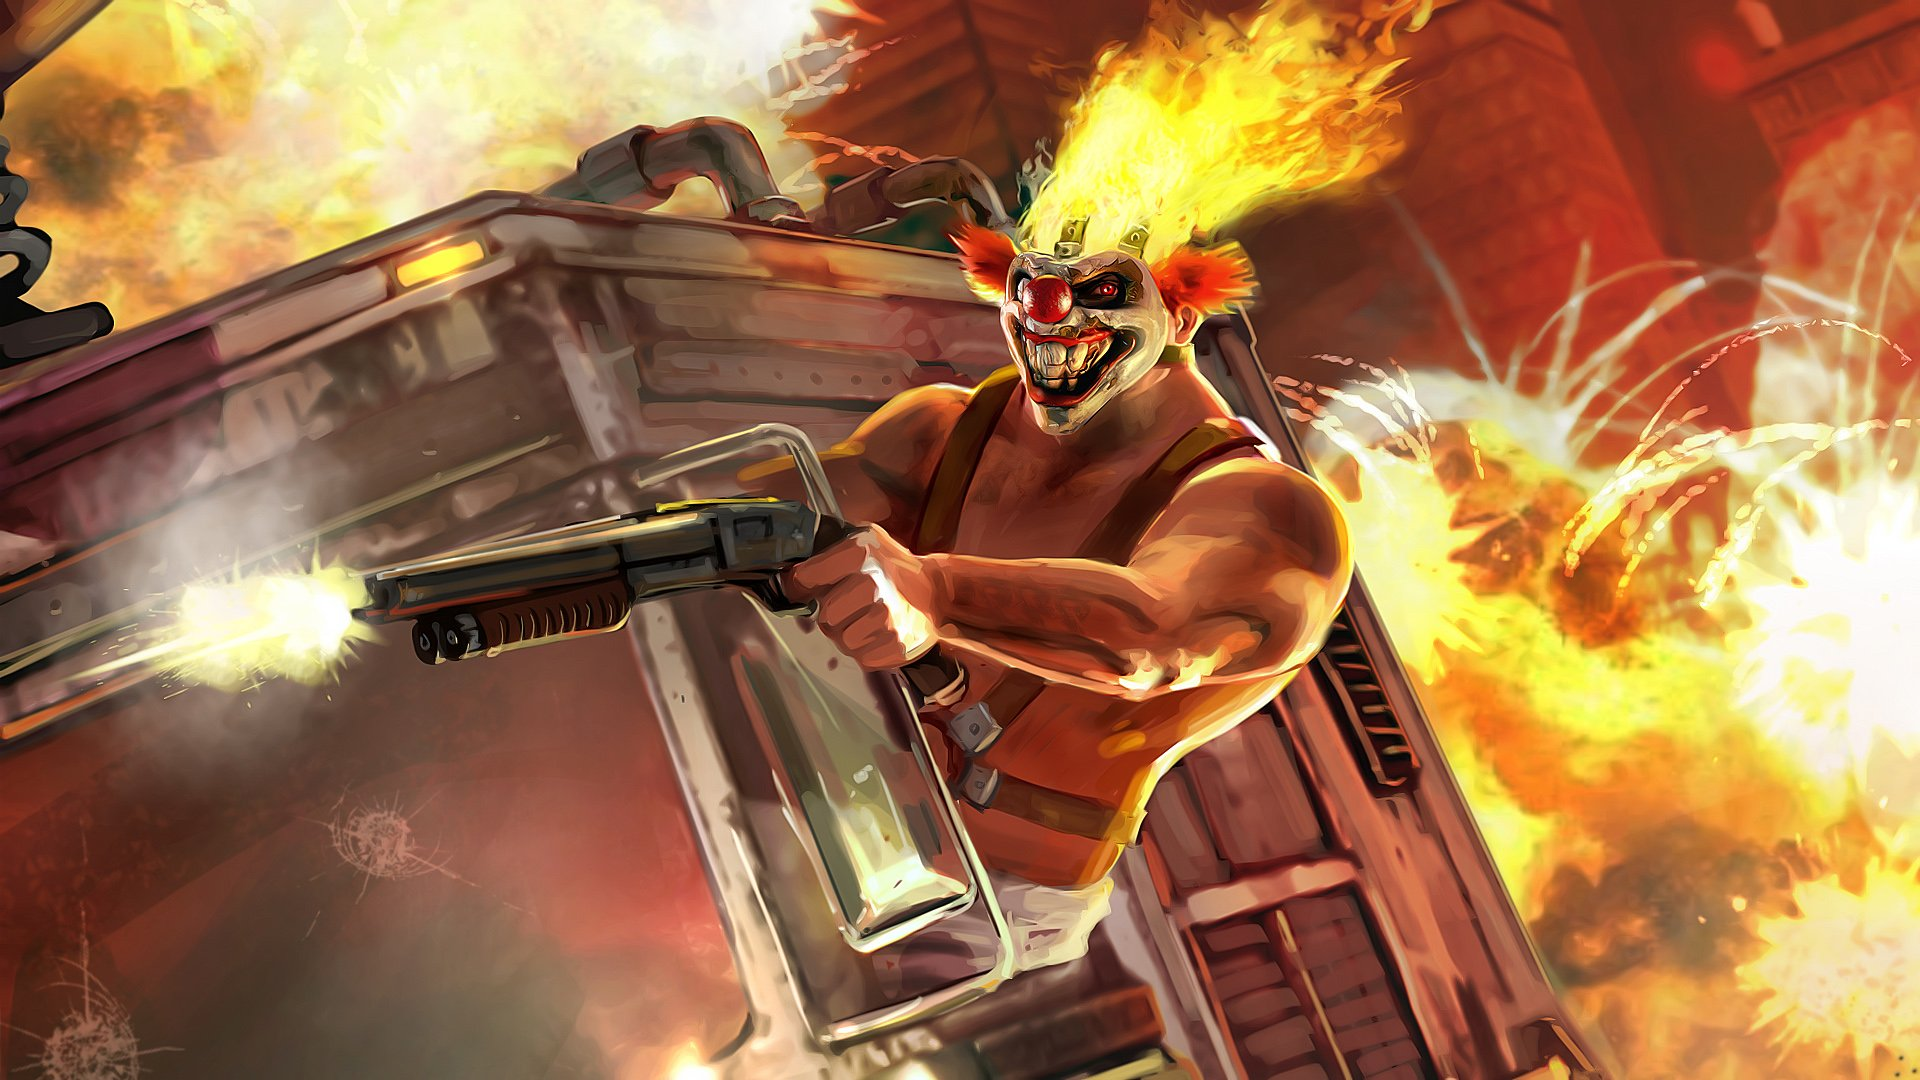 One of the IPs that Sony plans to adapt is Twisted Metal according to statements made by Sony Pictures CEO Tony Vinciquerra.